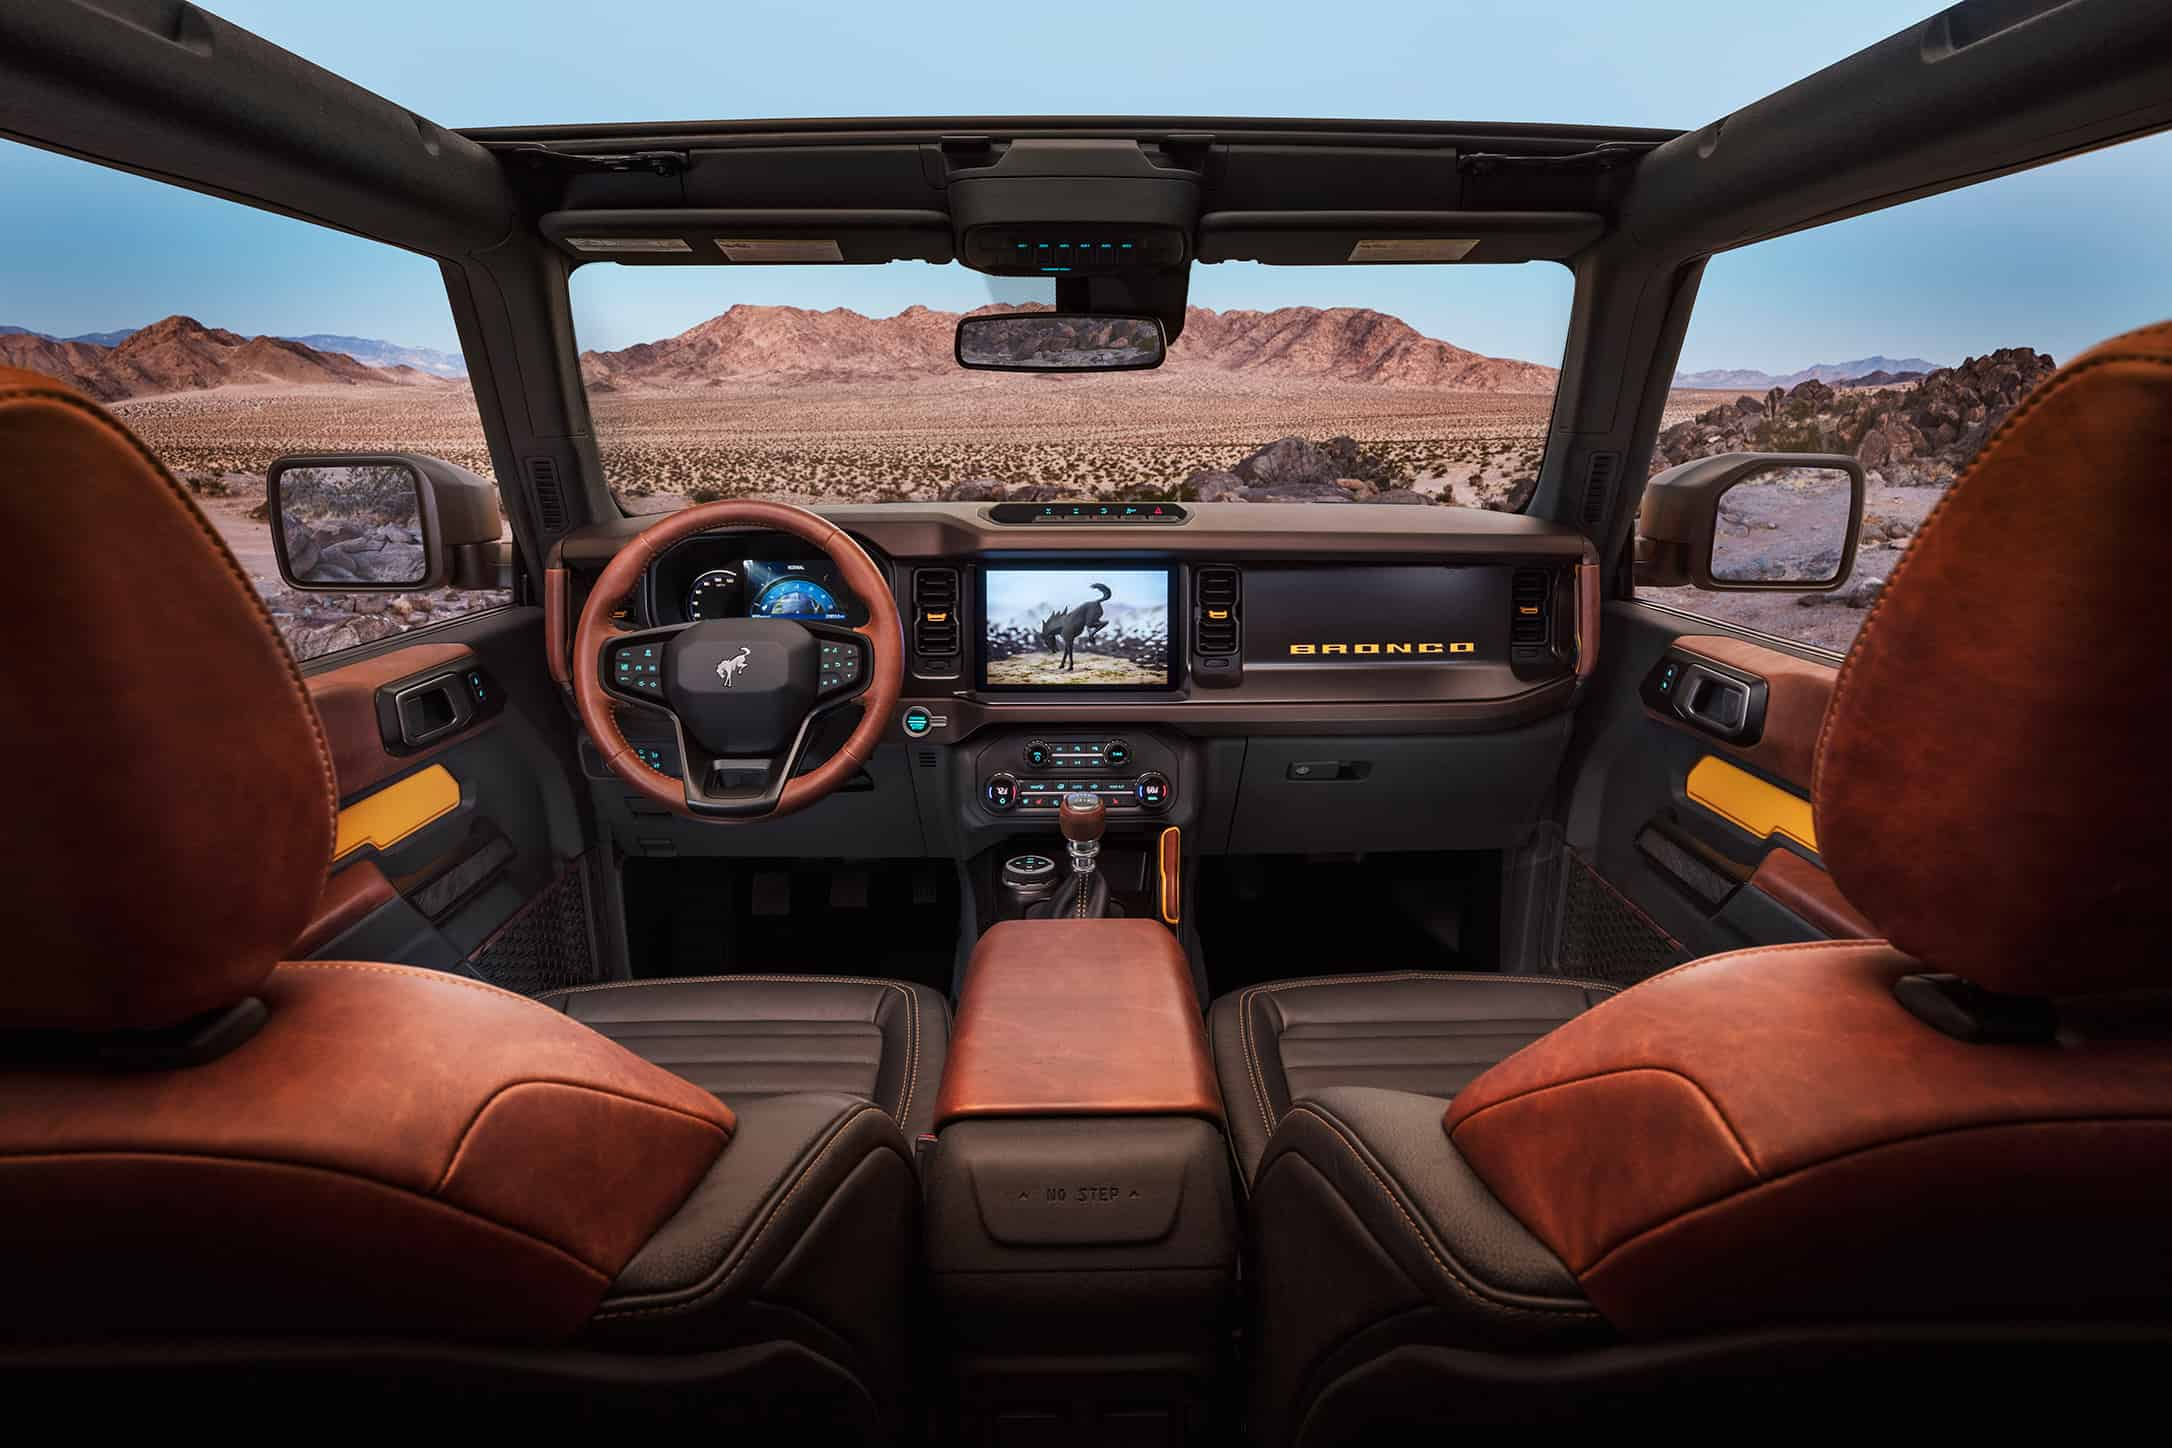 2021 Ford Bronco interior